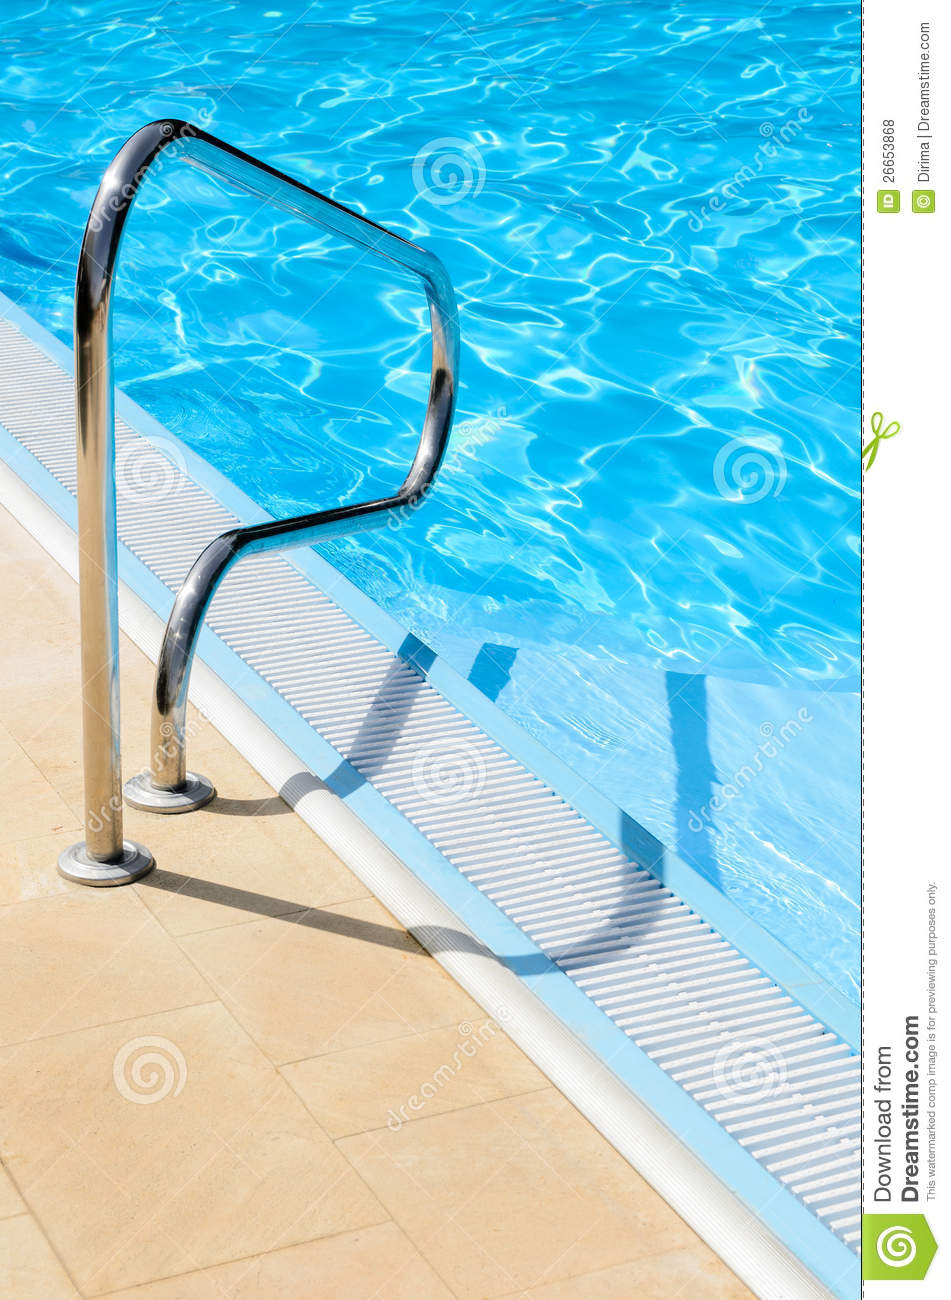 Metal pool railing royalty free stock photos image